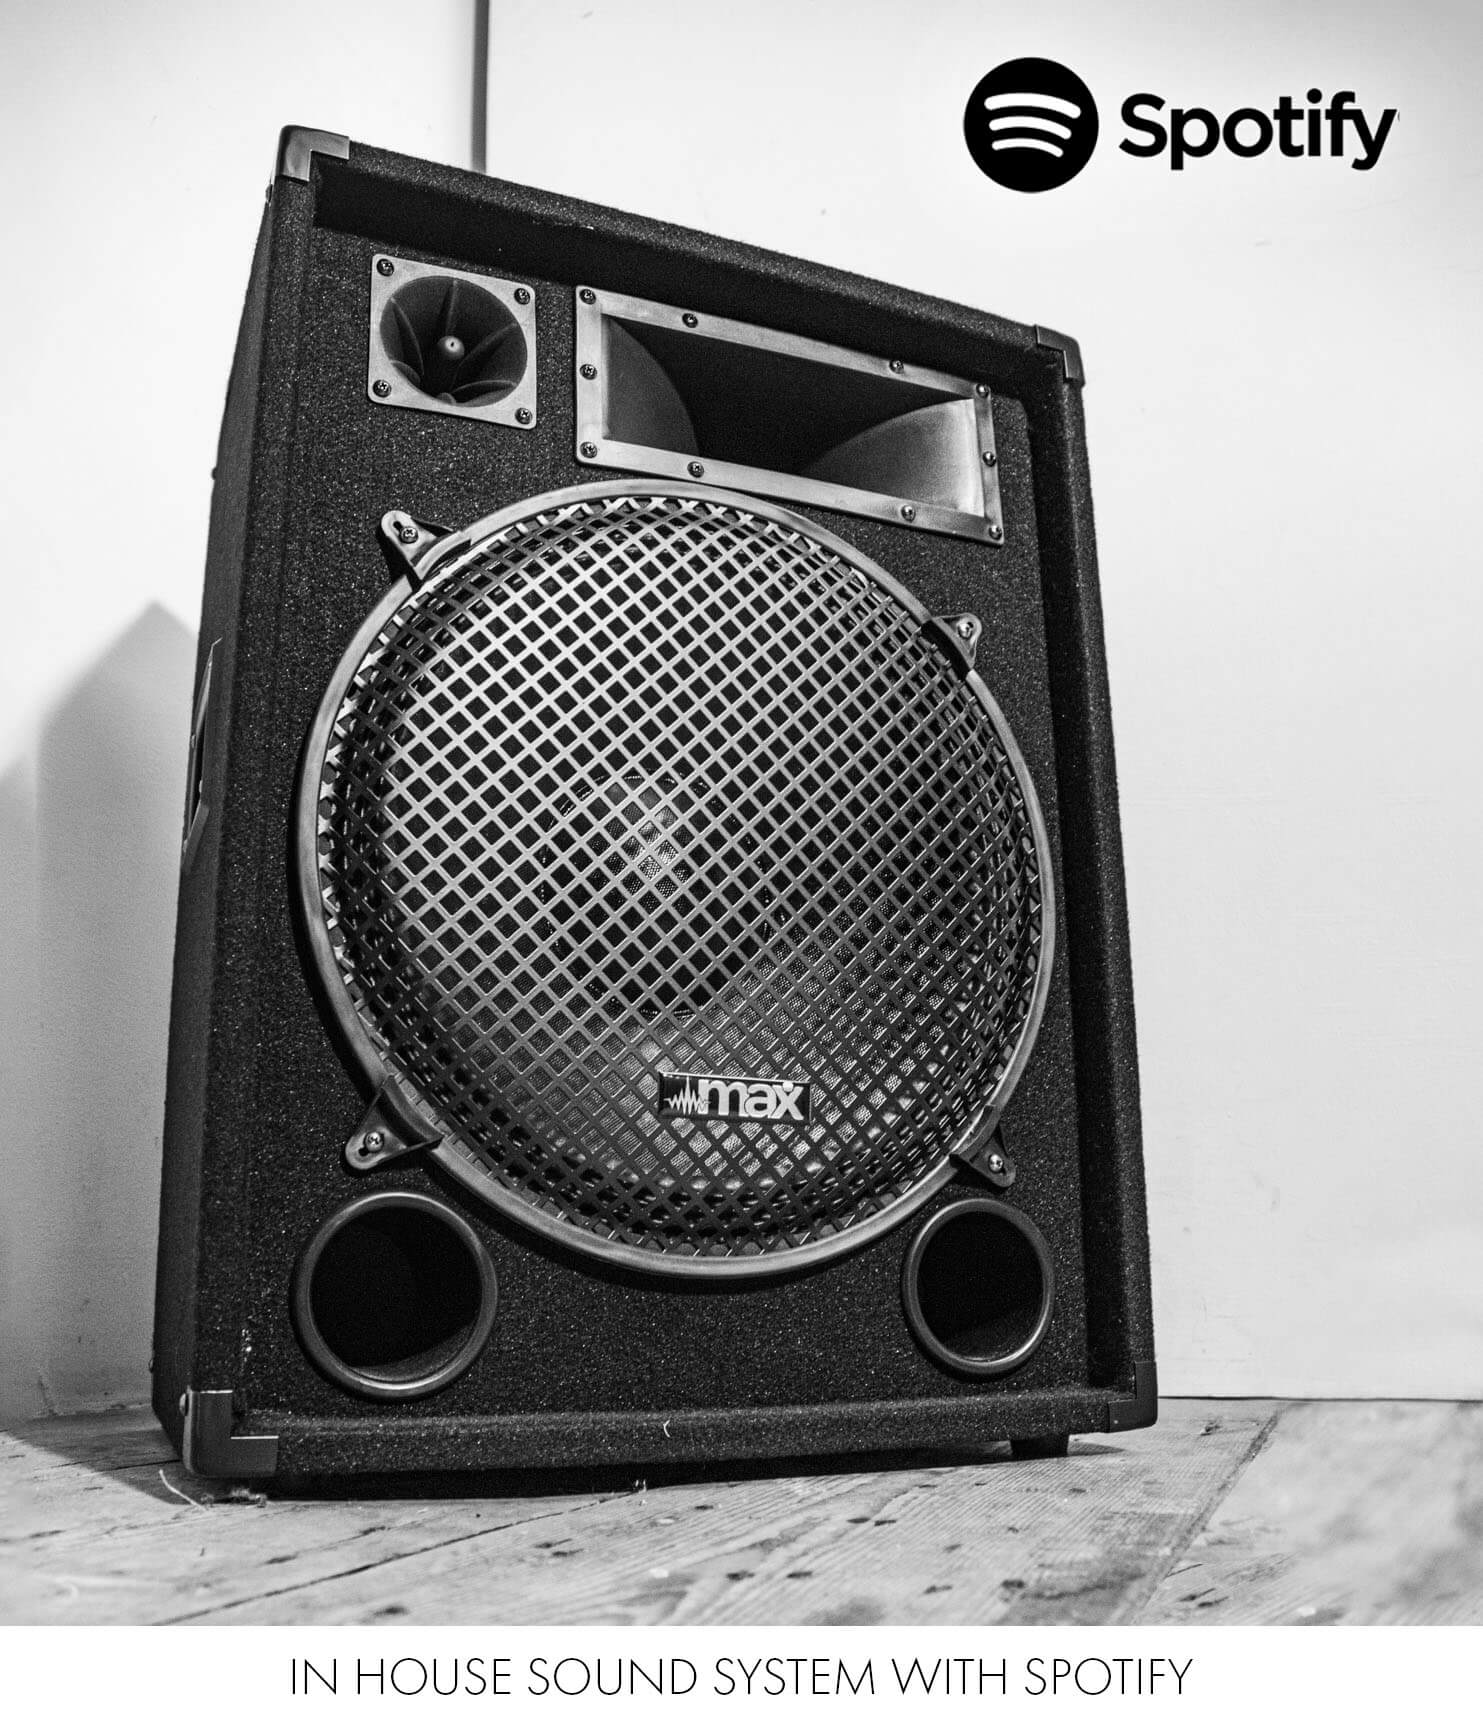 A speaker system with Spotify in the studio for music playback